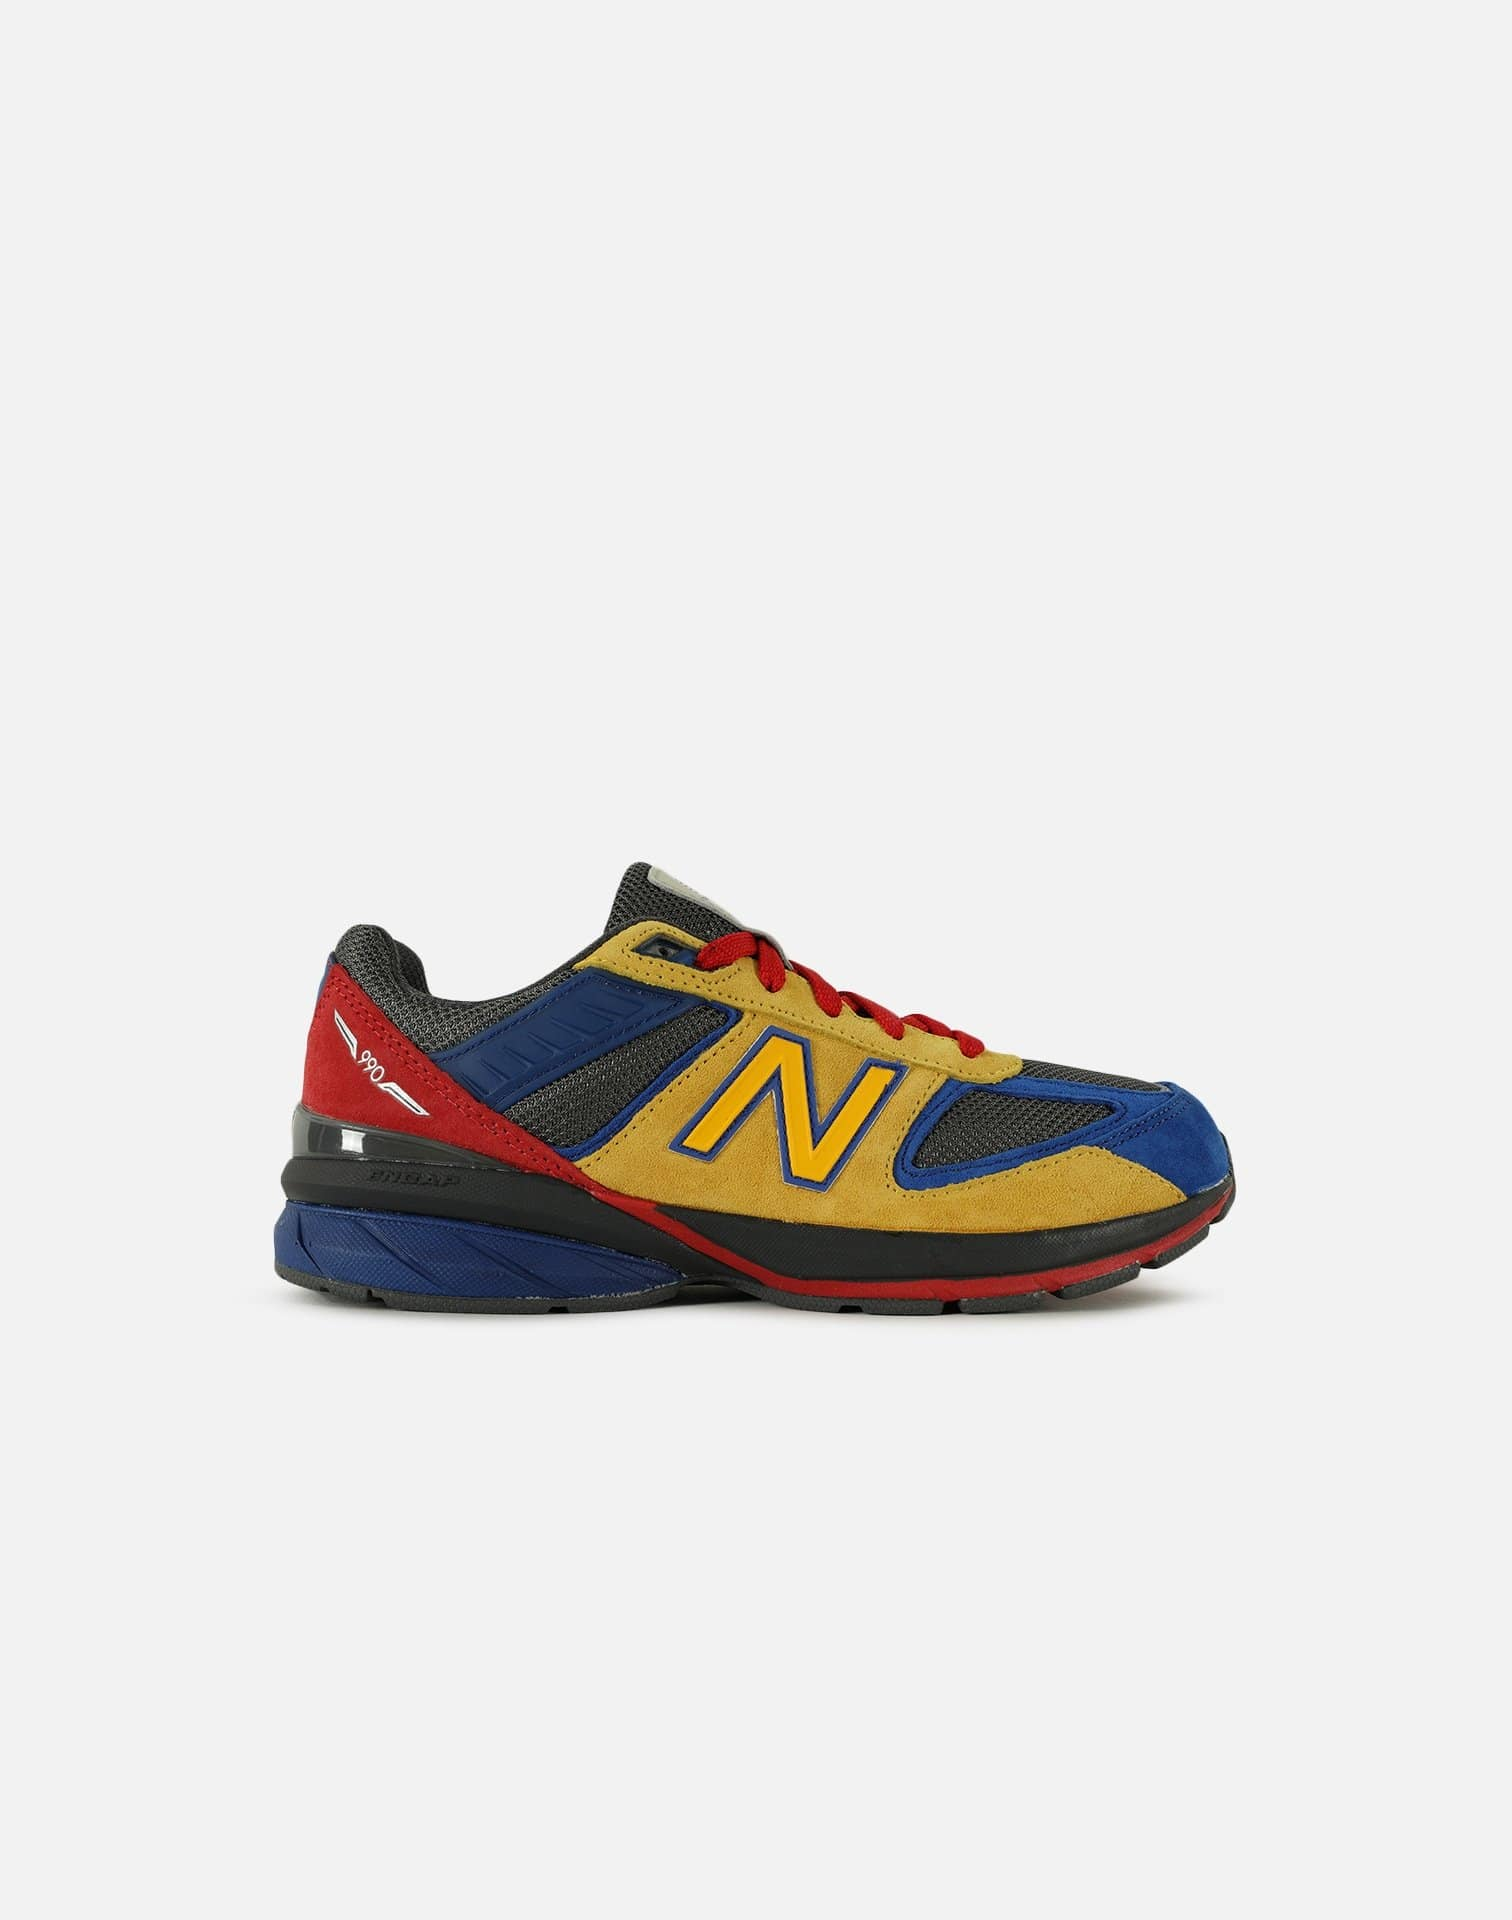 NewBalance 990 EAT GRADE-SCHOOL